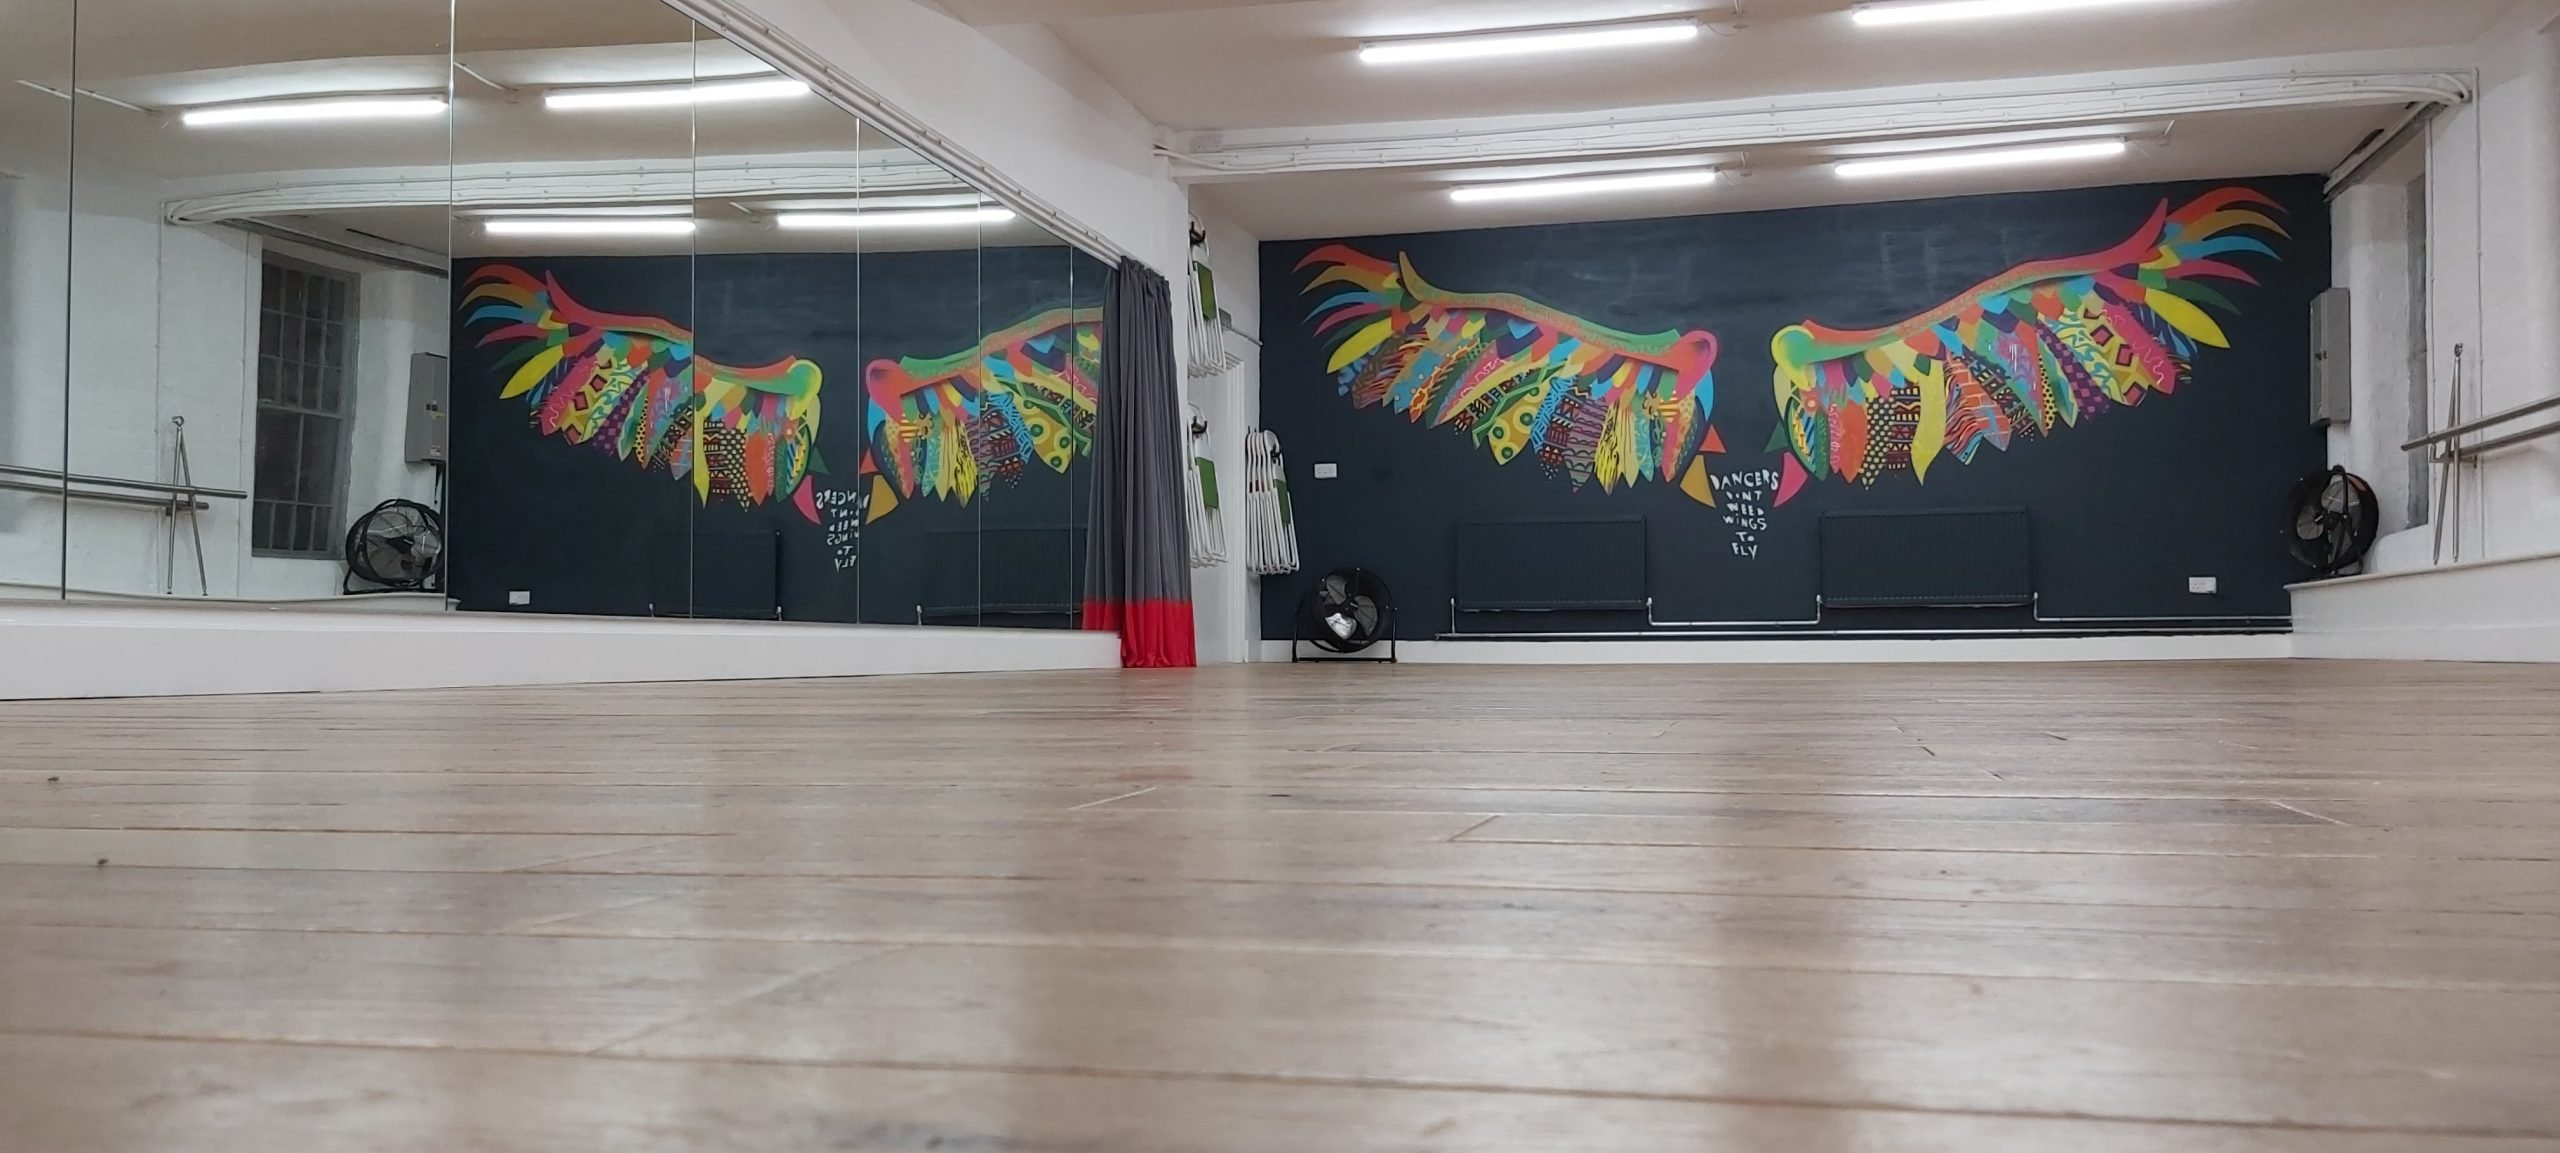 dance studio in nottingham for todo latino lessons location for salsa and bachata classes and workshops